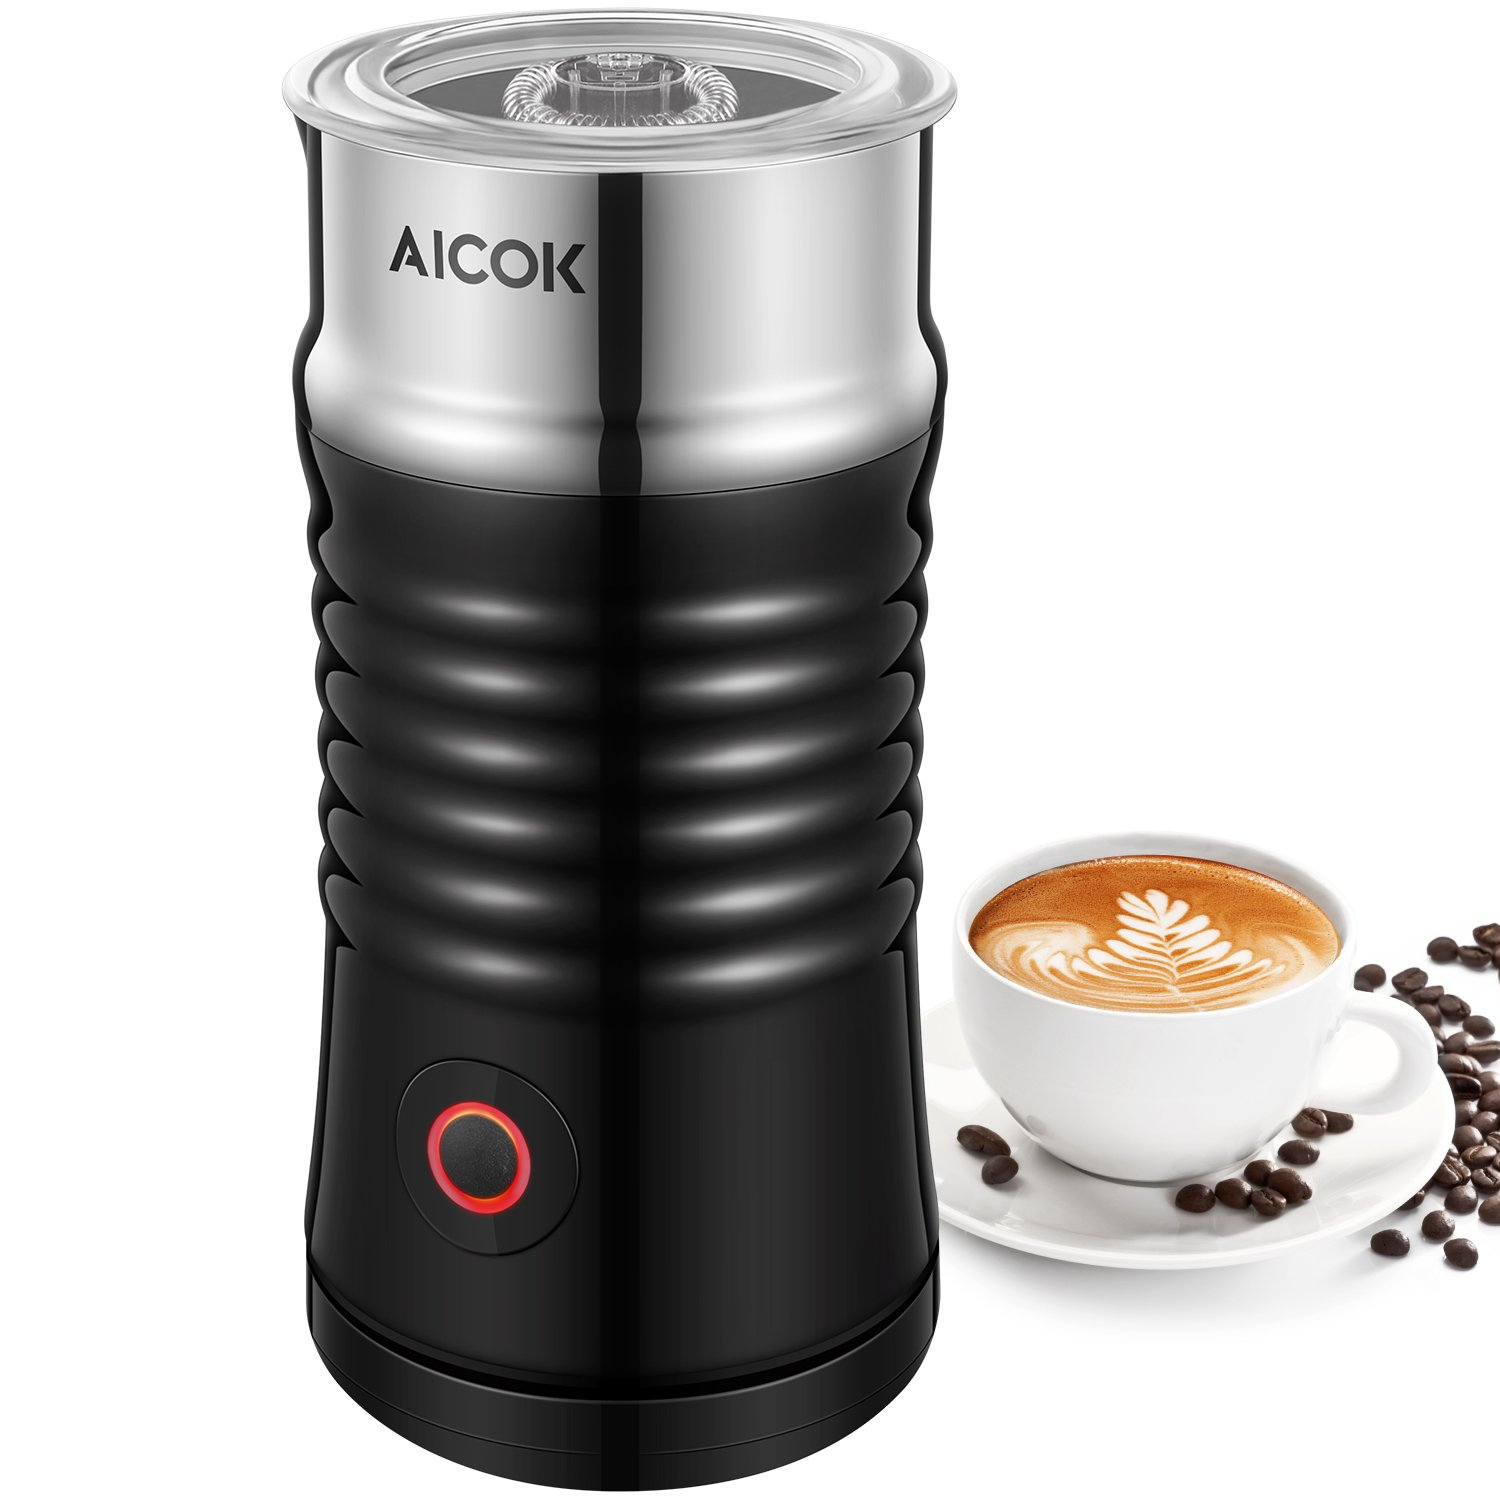 Milk Frother, Aicok Electric Milk Steamer with Hot or Cold Milk Froth with Double Wall, Strix Control, Non-Stick Coating, Silent Operation, Milk Warmer, for Cappuccino, Hot Chocolate, Latte, Coffee